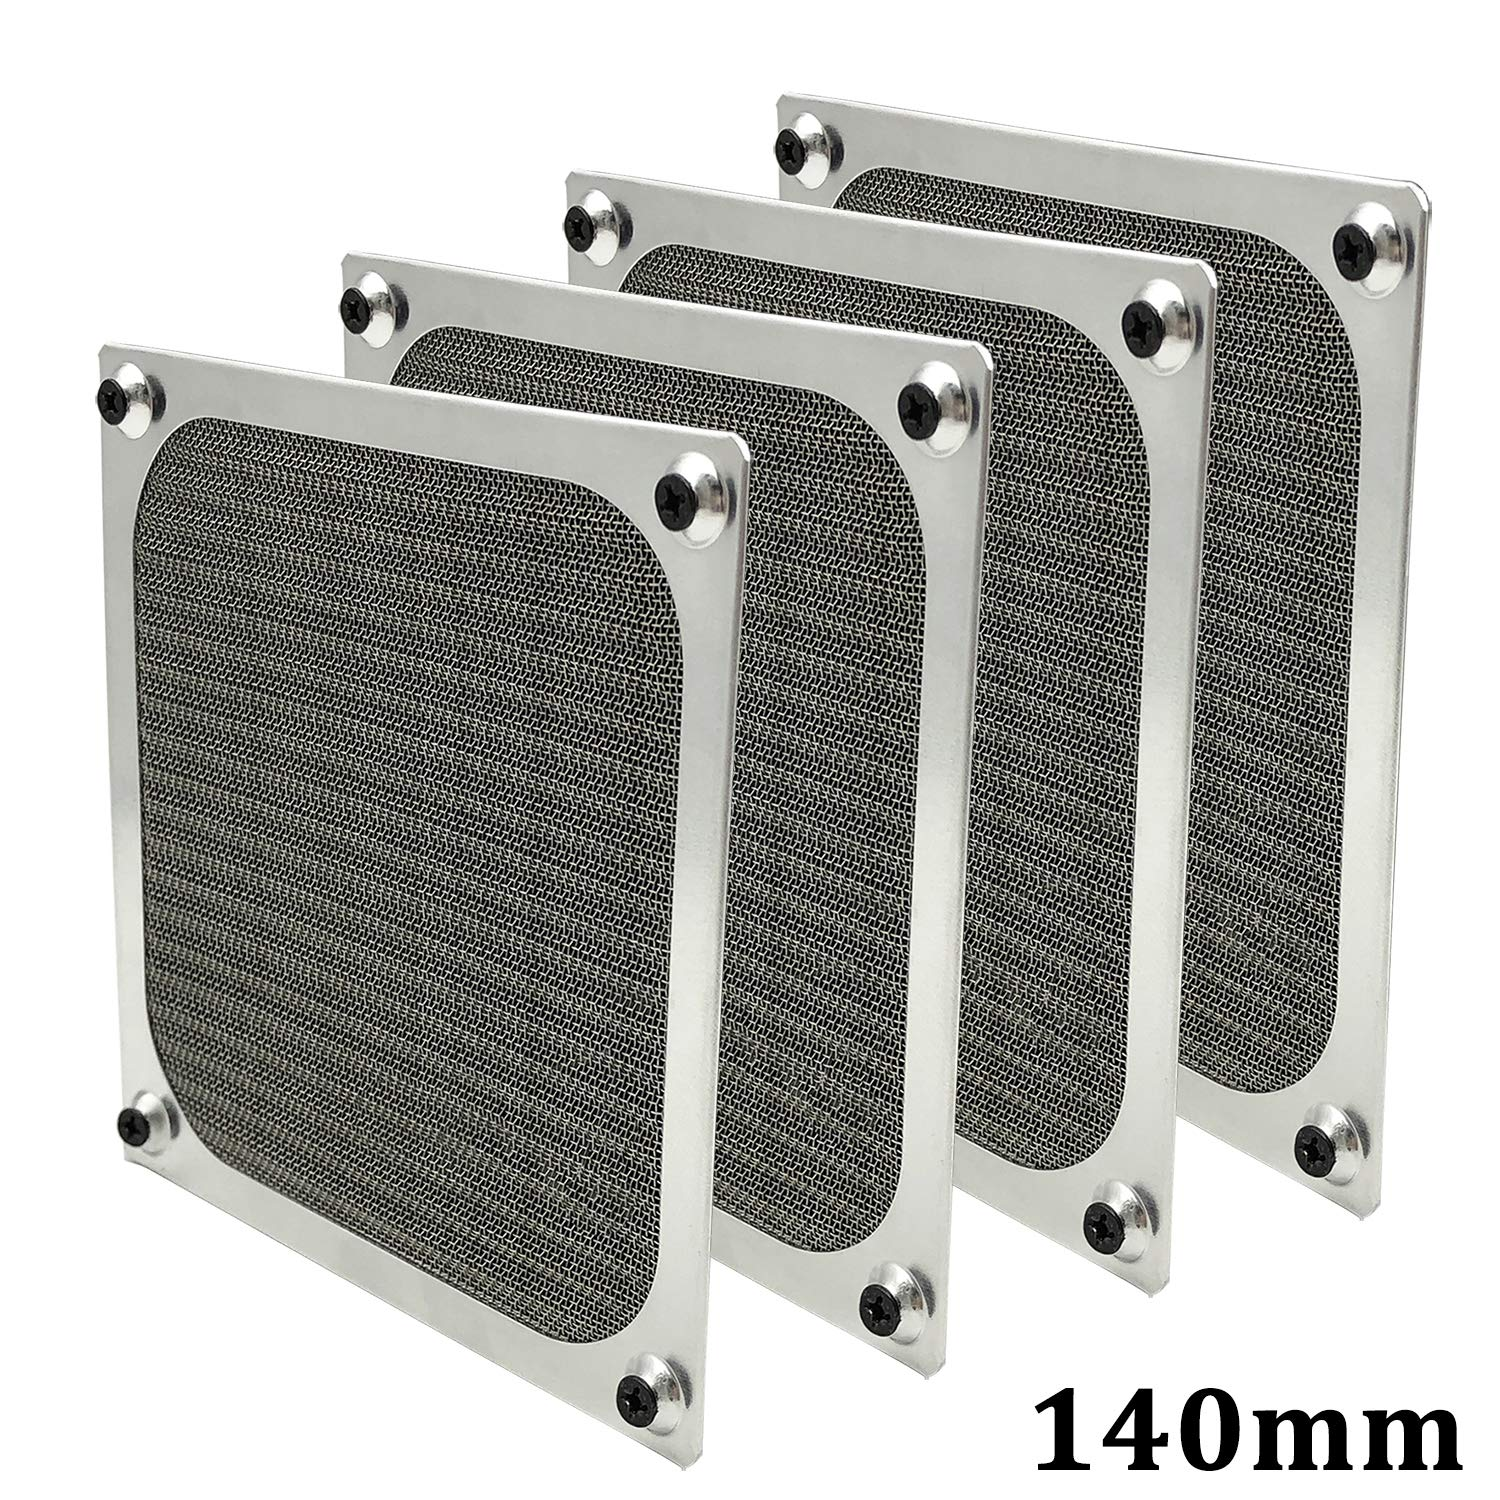 140mm PC Computer Case Fan Dust Filter Grills Dustproof Case Cover with Screws, Aluminum Frame Ultra Fine Stainelss Steel Mesh, Silver Color - 4 Pack